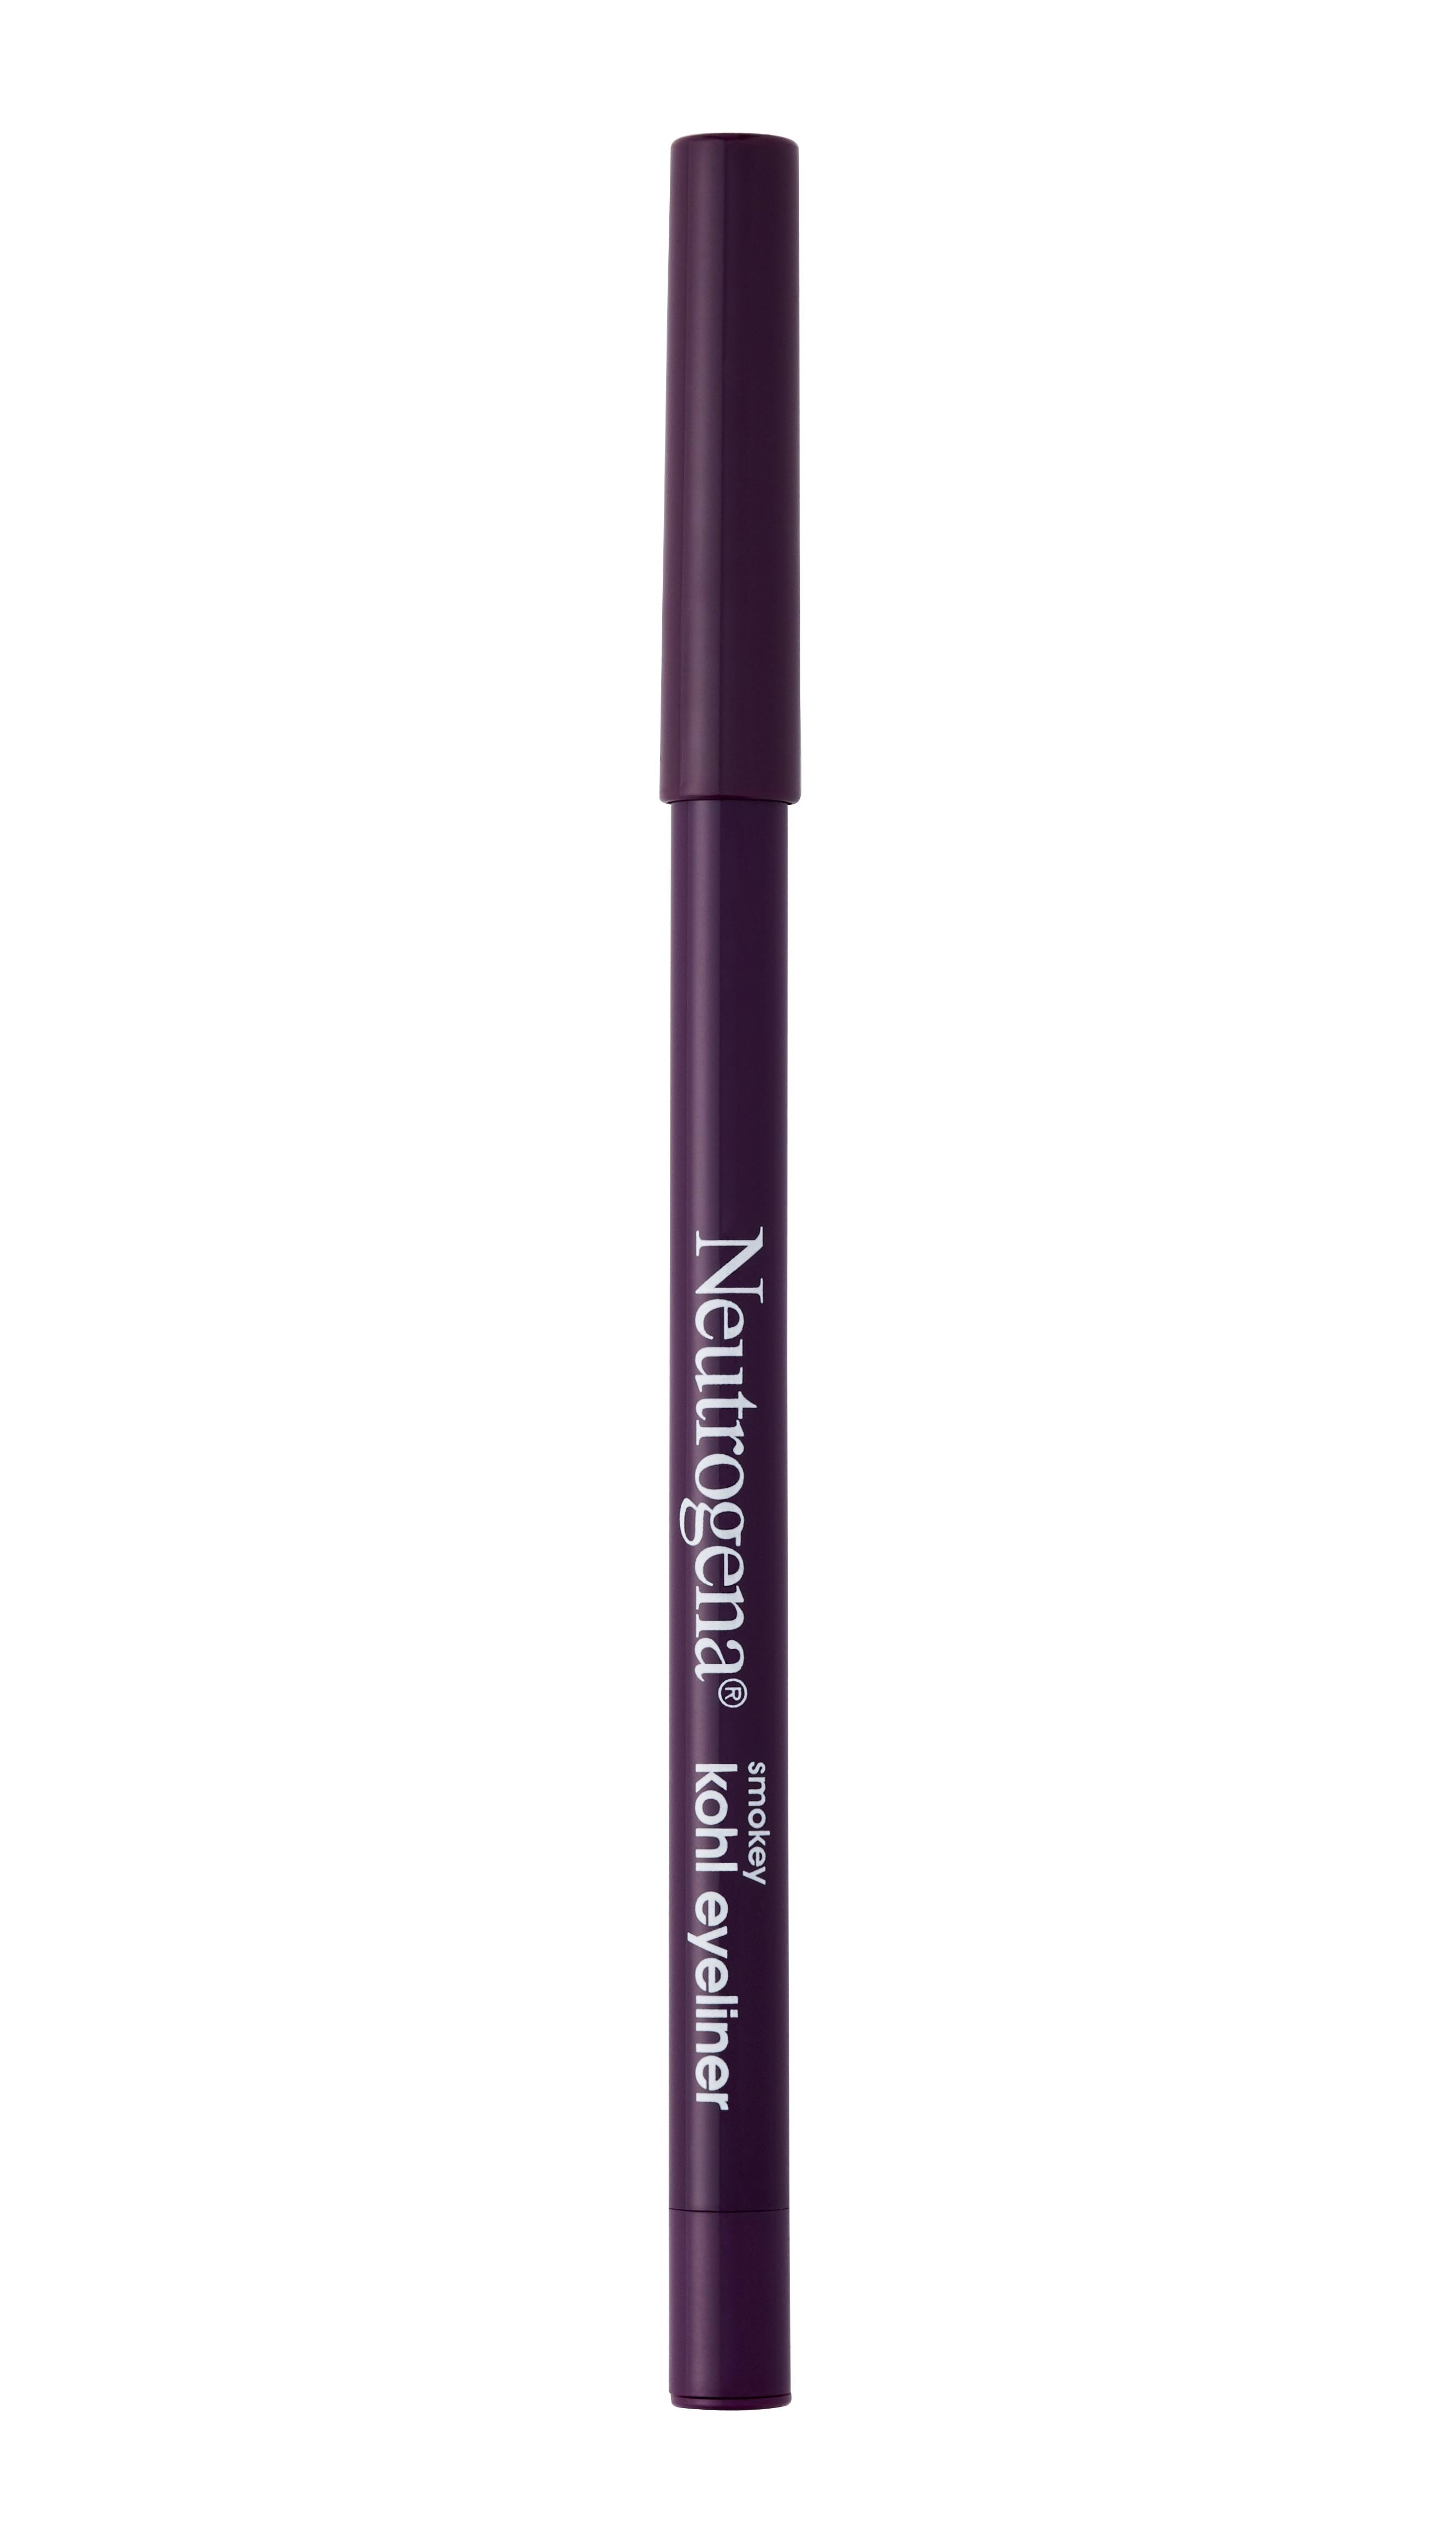 Neutrogena Eyeliner, Kohl, Smokey, Rich Plum 50 - 0.014 oz